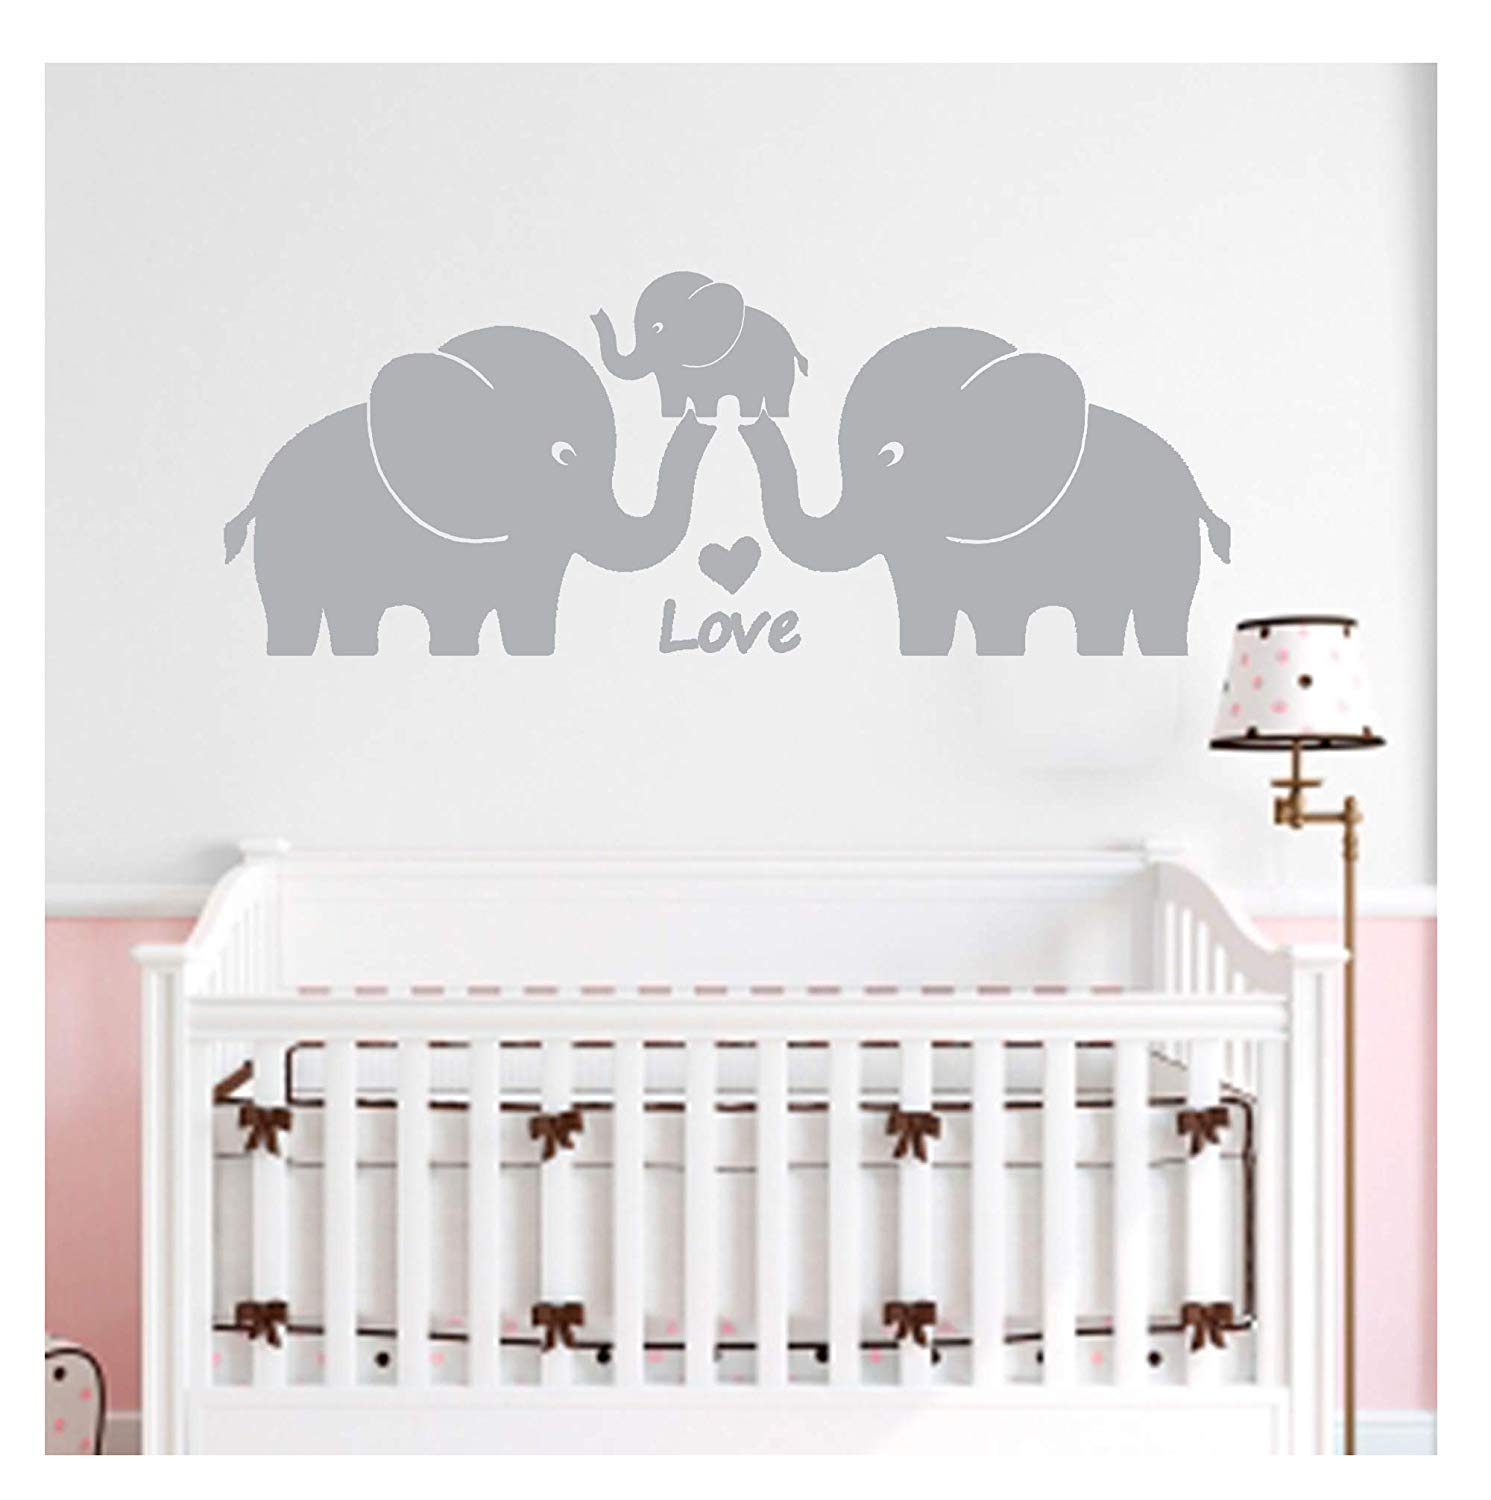 MAFENT One Lovely Elephant Blowing Bubbles Wall Decal Vinyl Wall Sticker for